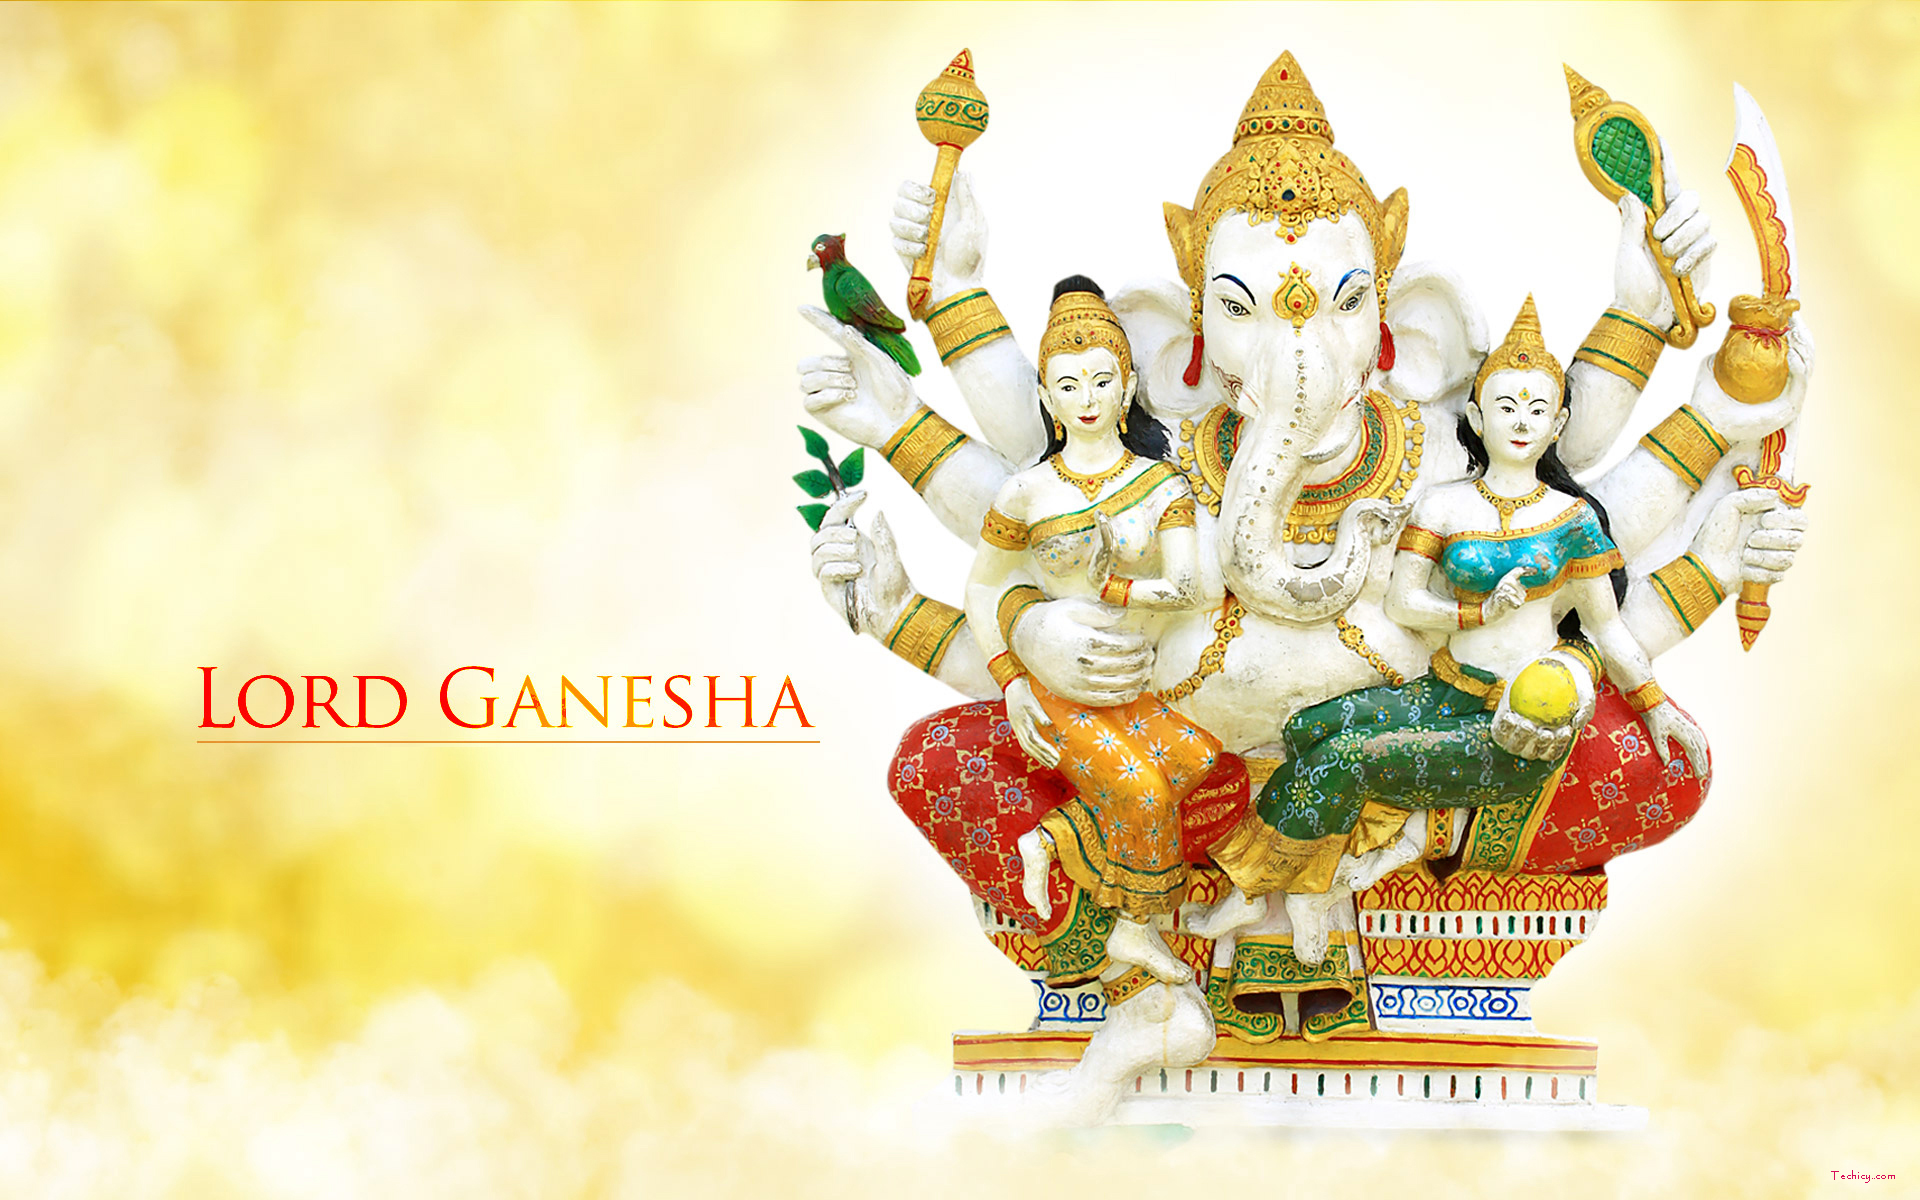 Shree Ganesh Hd Images: Ganesh Chaturthi HD Images, Wallpapers, Pics, And Photos